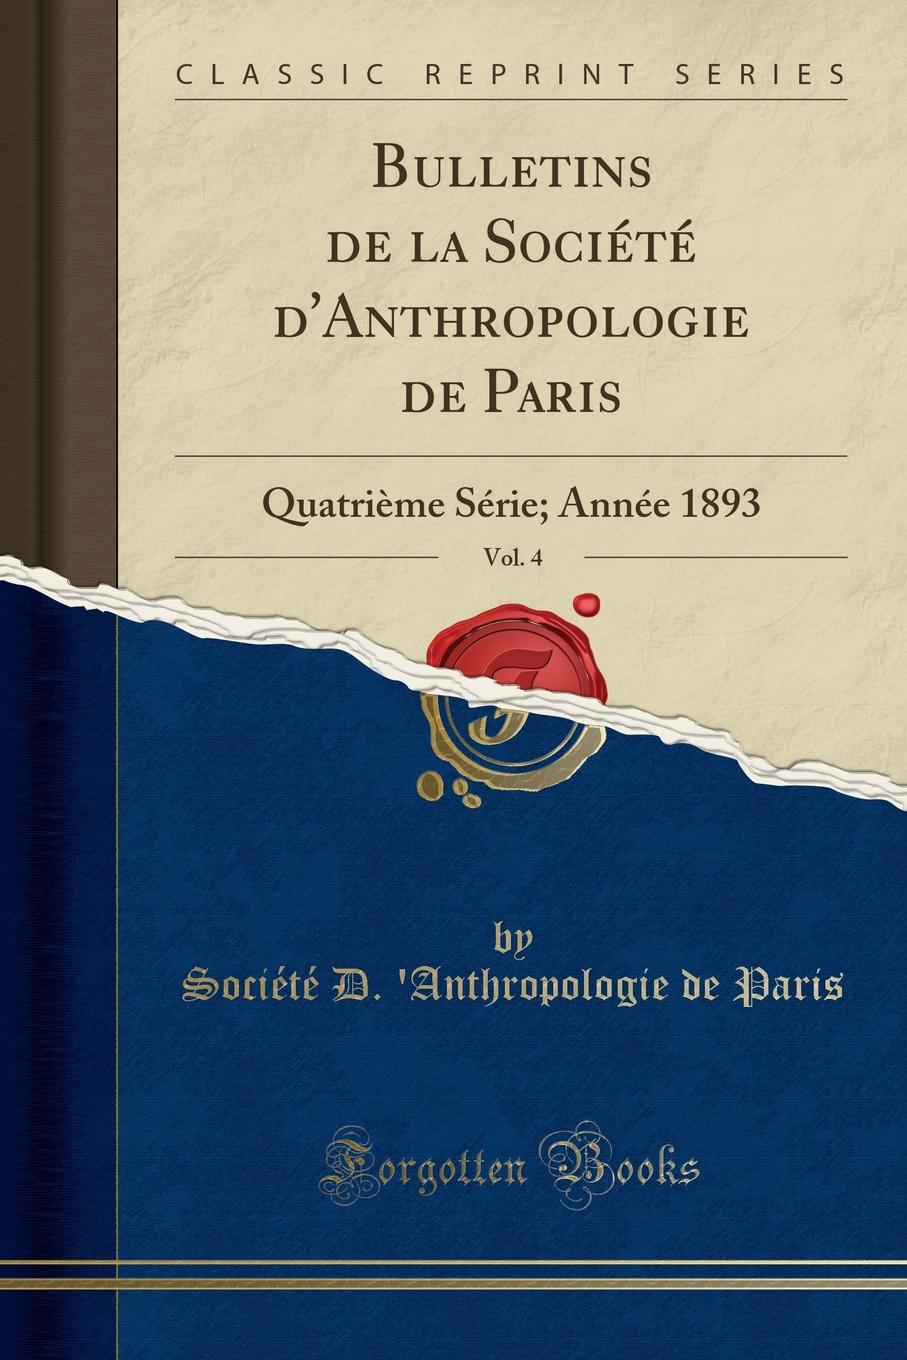 Société D. 'Anthropologie de Paris Bulletins de la Societe d.Anthropologie de Paris, Vol. 4. Quatrieme Serie; Annee 1893 (Classic Reprint)